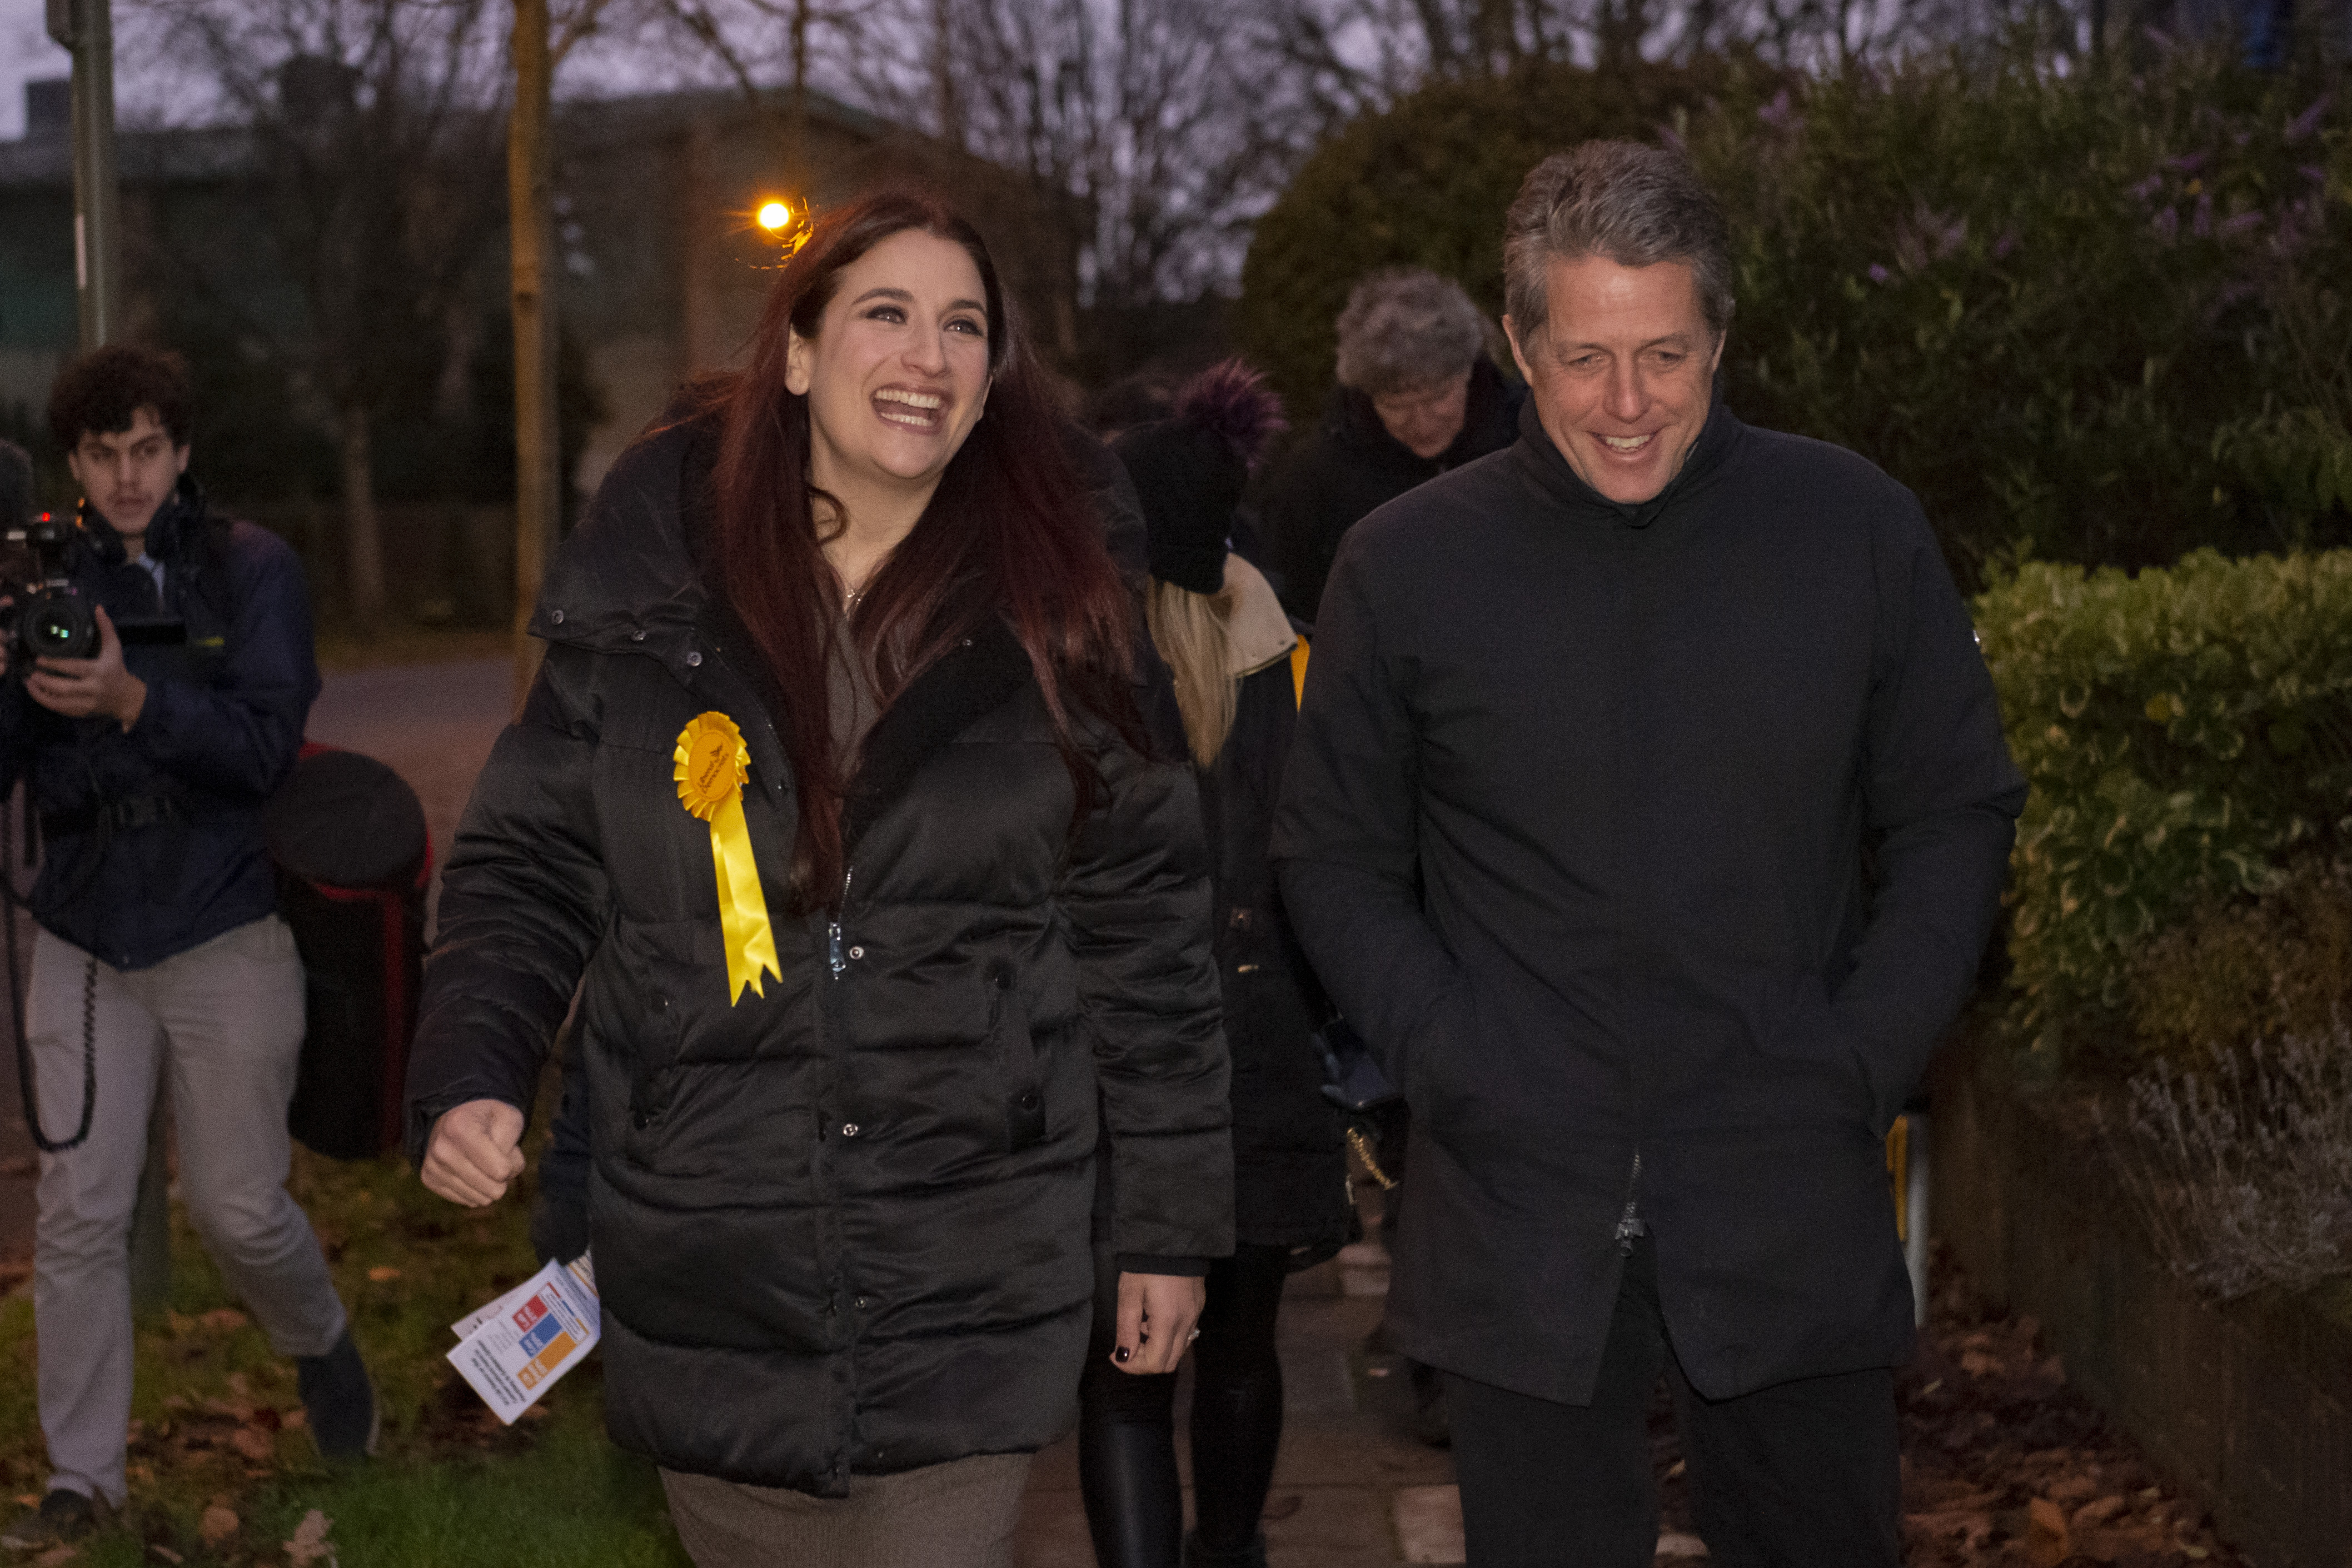 Liberal Democrat's candidate for Finchley and Golders Green, Luciana Berger and Hugh Grant canvassing in Finchley while on the General Election campaign trail.